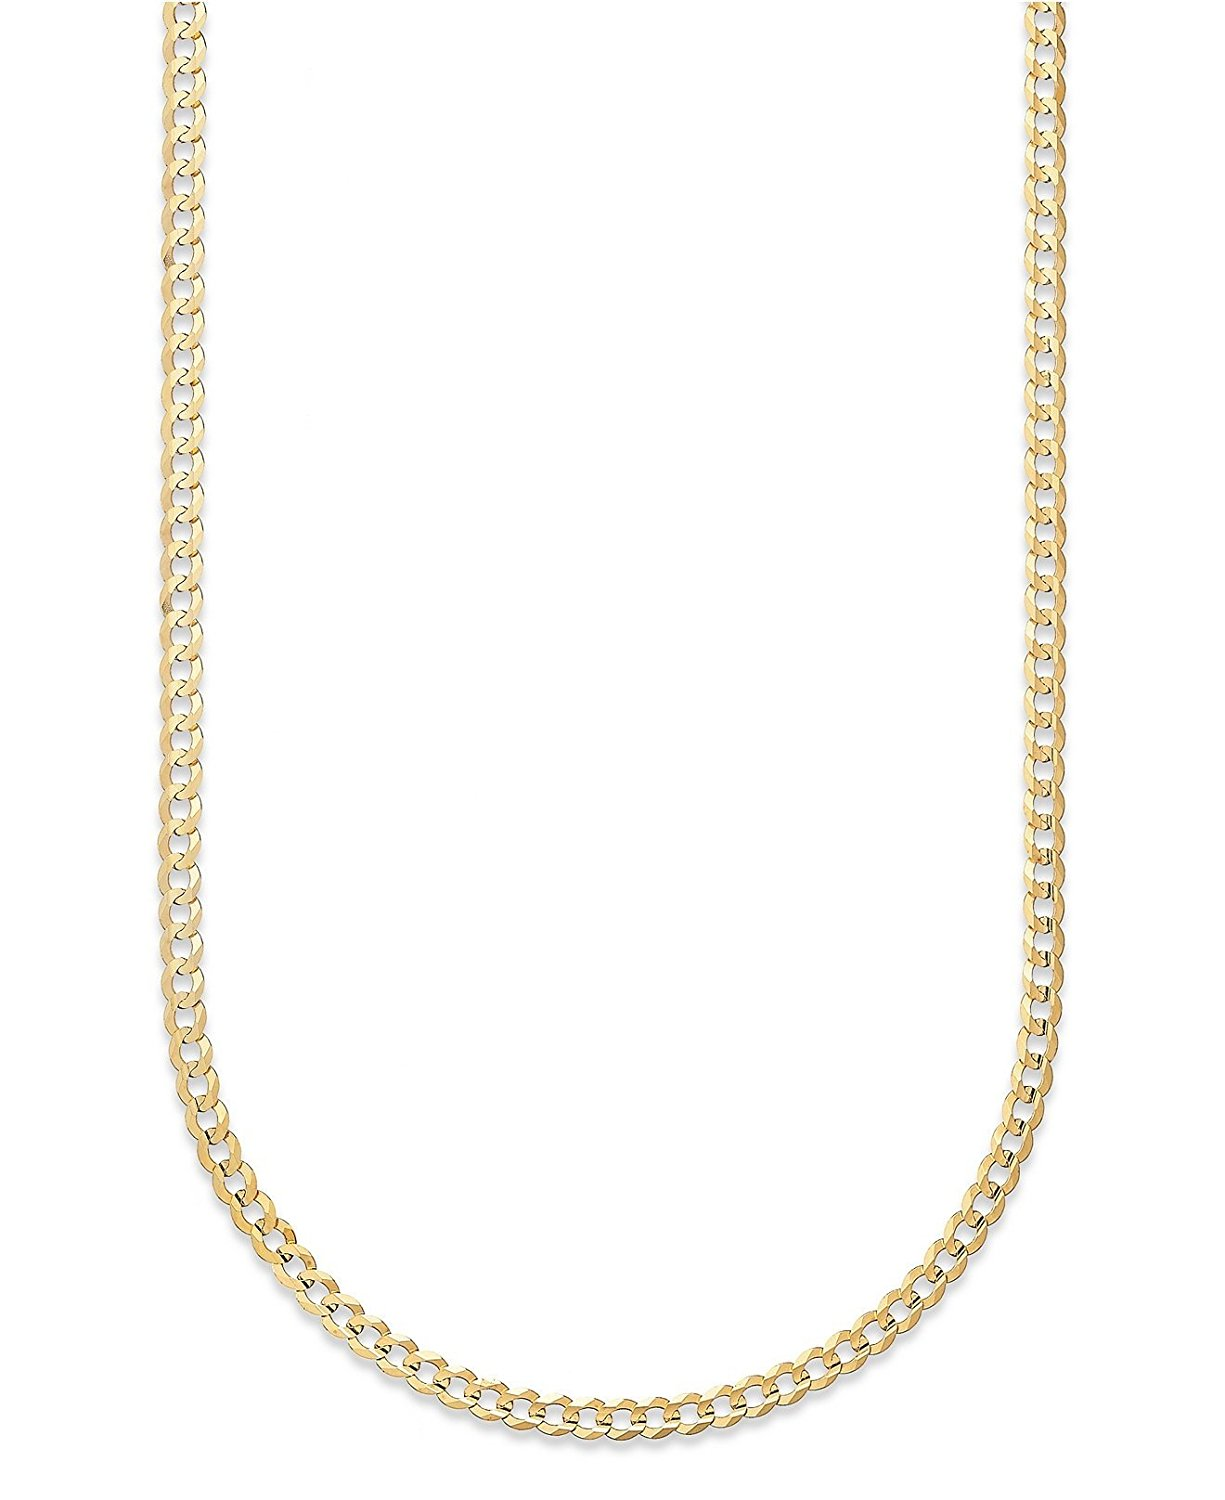 14K Solid Yellow Gold 2.65mm Cuban Curb Link Chain Necklace- Made in Italy